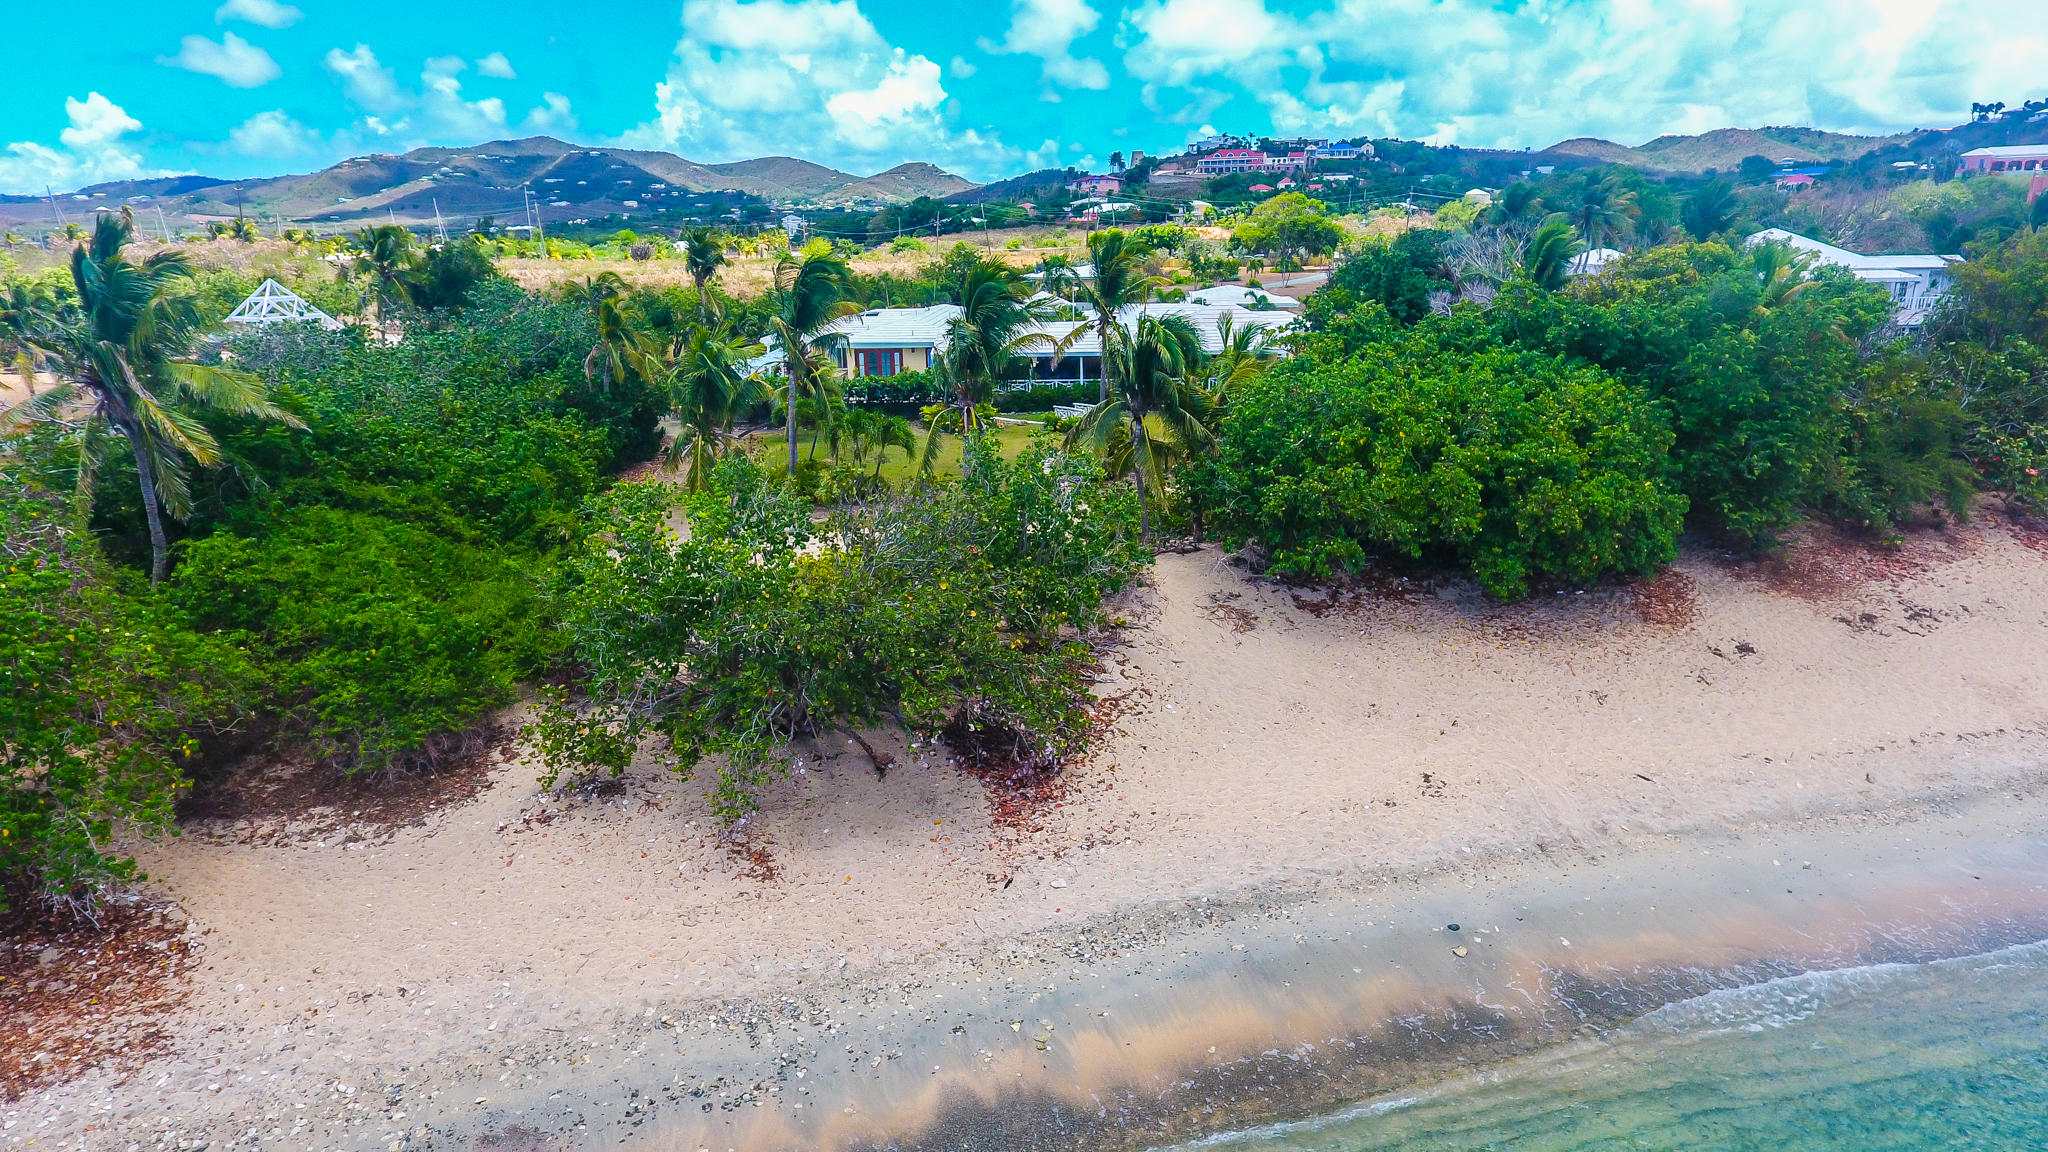 Single Family Home for Sale at 3 & 10 Shoys (The) EA 3 & 10 Shoys (The) EA St Croix, Virgin Islands 00820 United States Virgin Islands